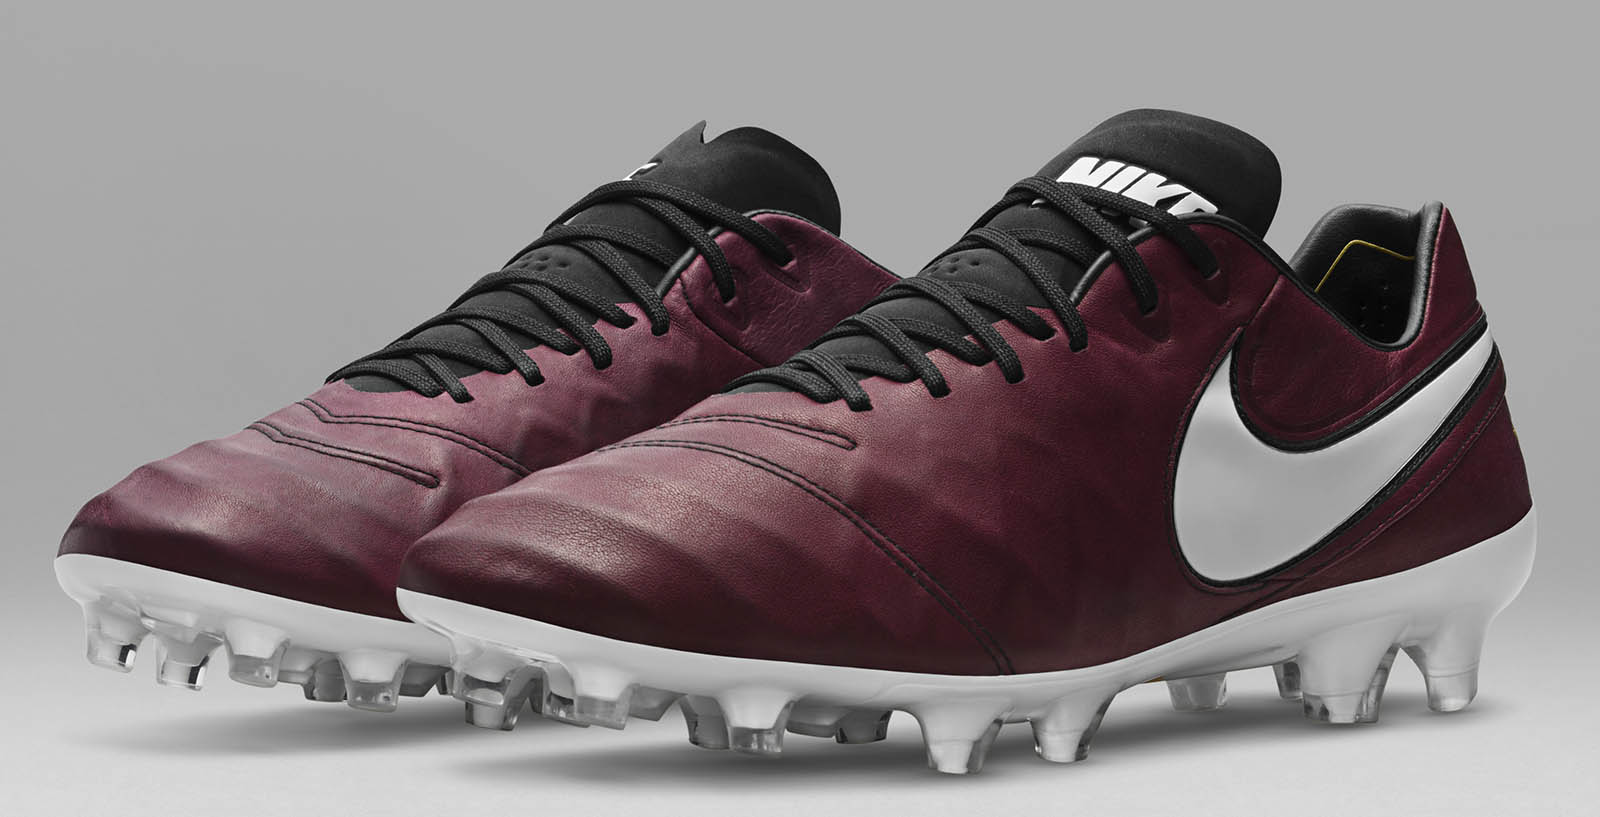 limited edition nike tiempo legend pirlo boots released. Black Bedroom Furniture Sets. Home Design Ideas